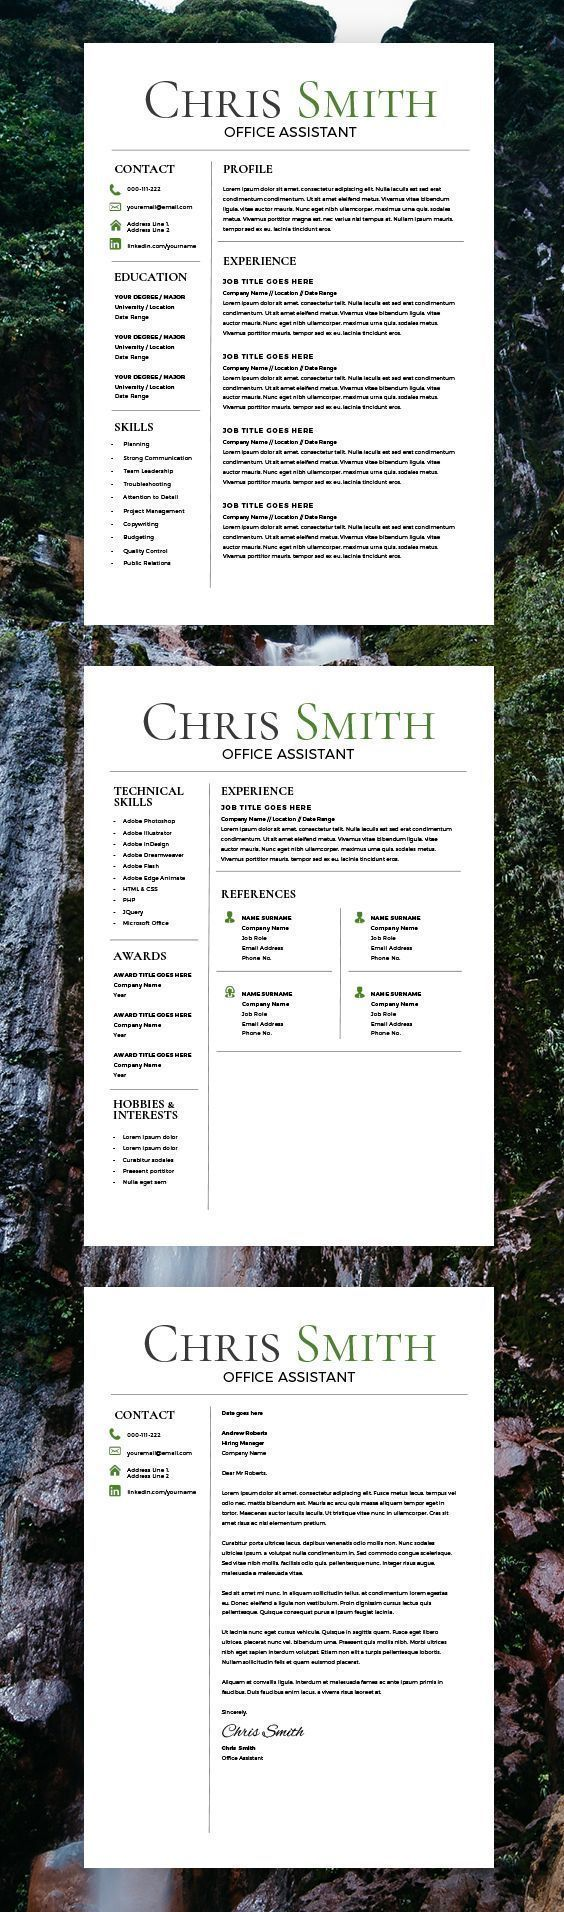 trending resume template cv template free cover letter ms word macpc - Good Resume Templates Free